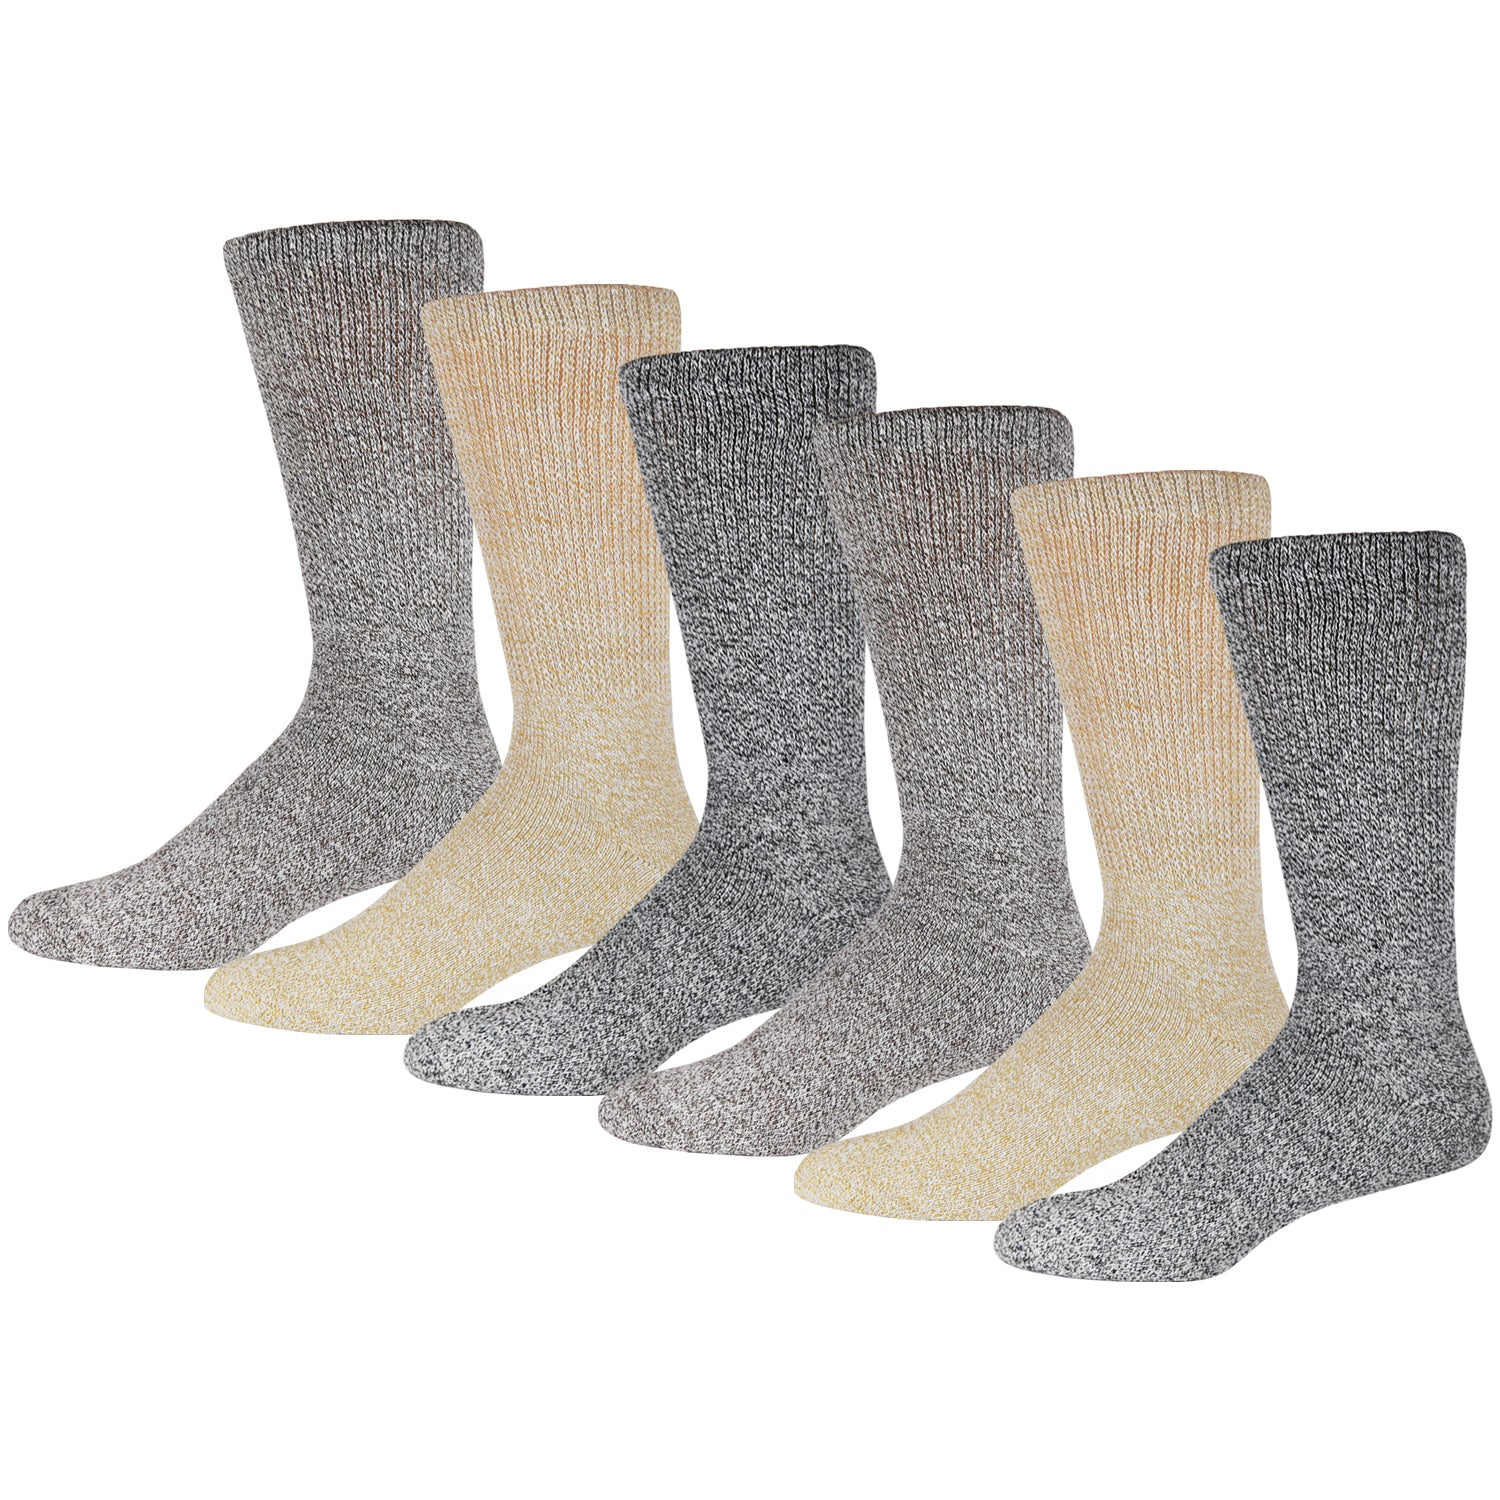 6 Pairs Of Soft Socks For Diabetics Marled Heather Gray